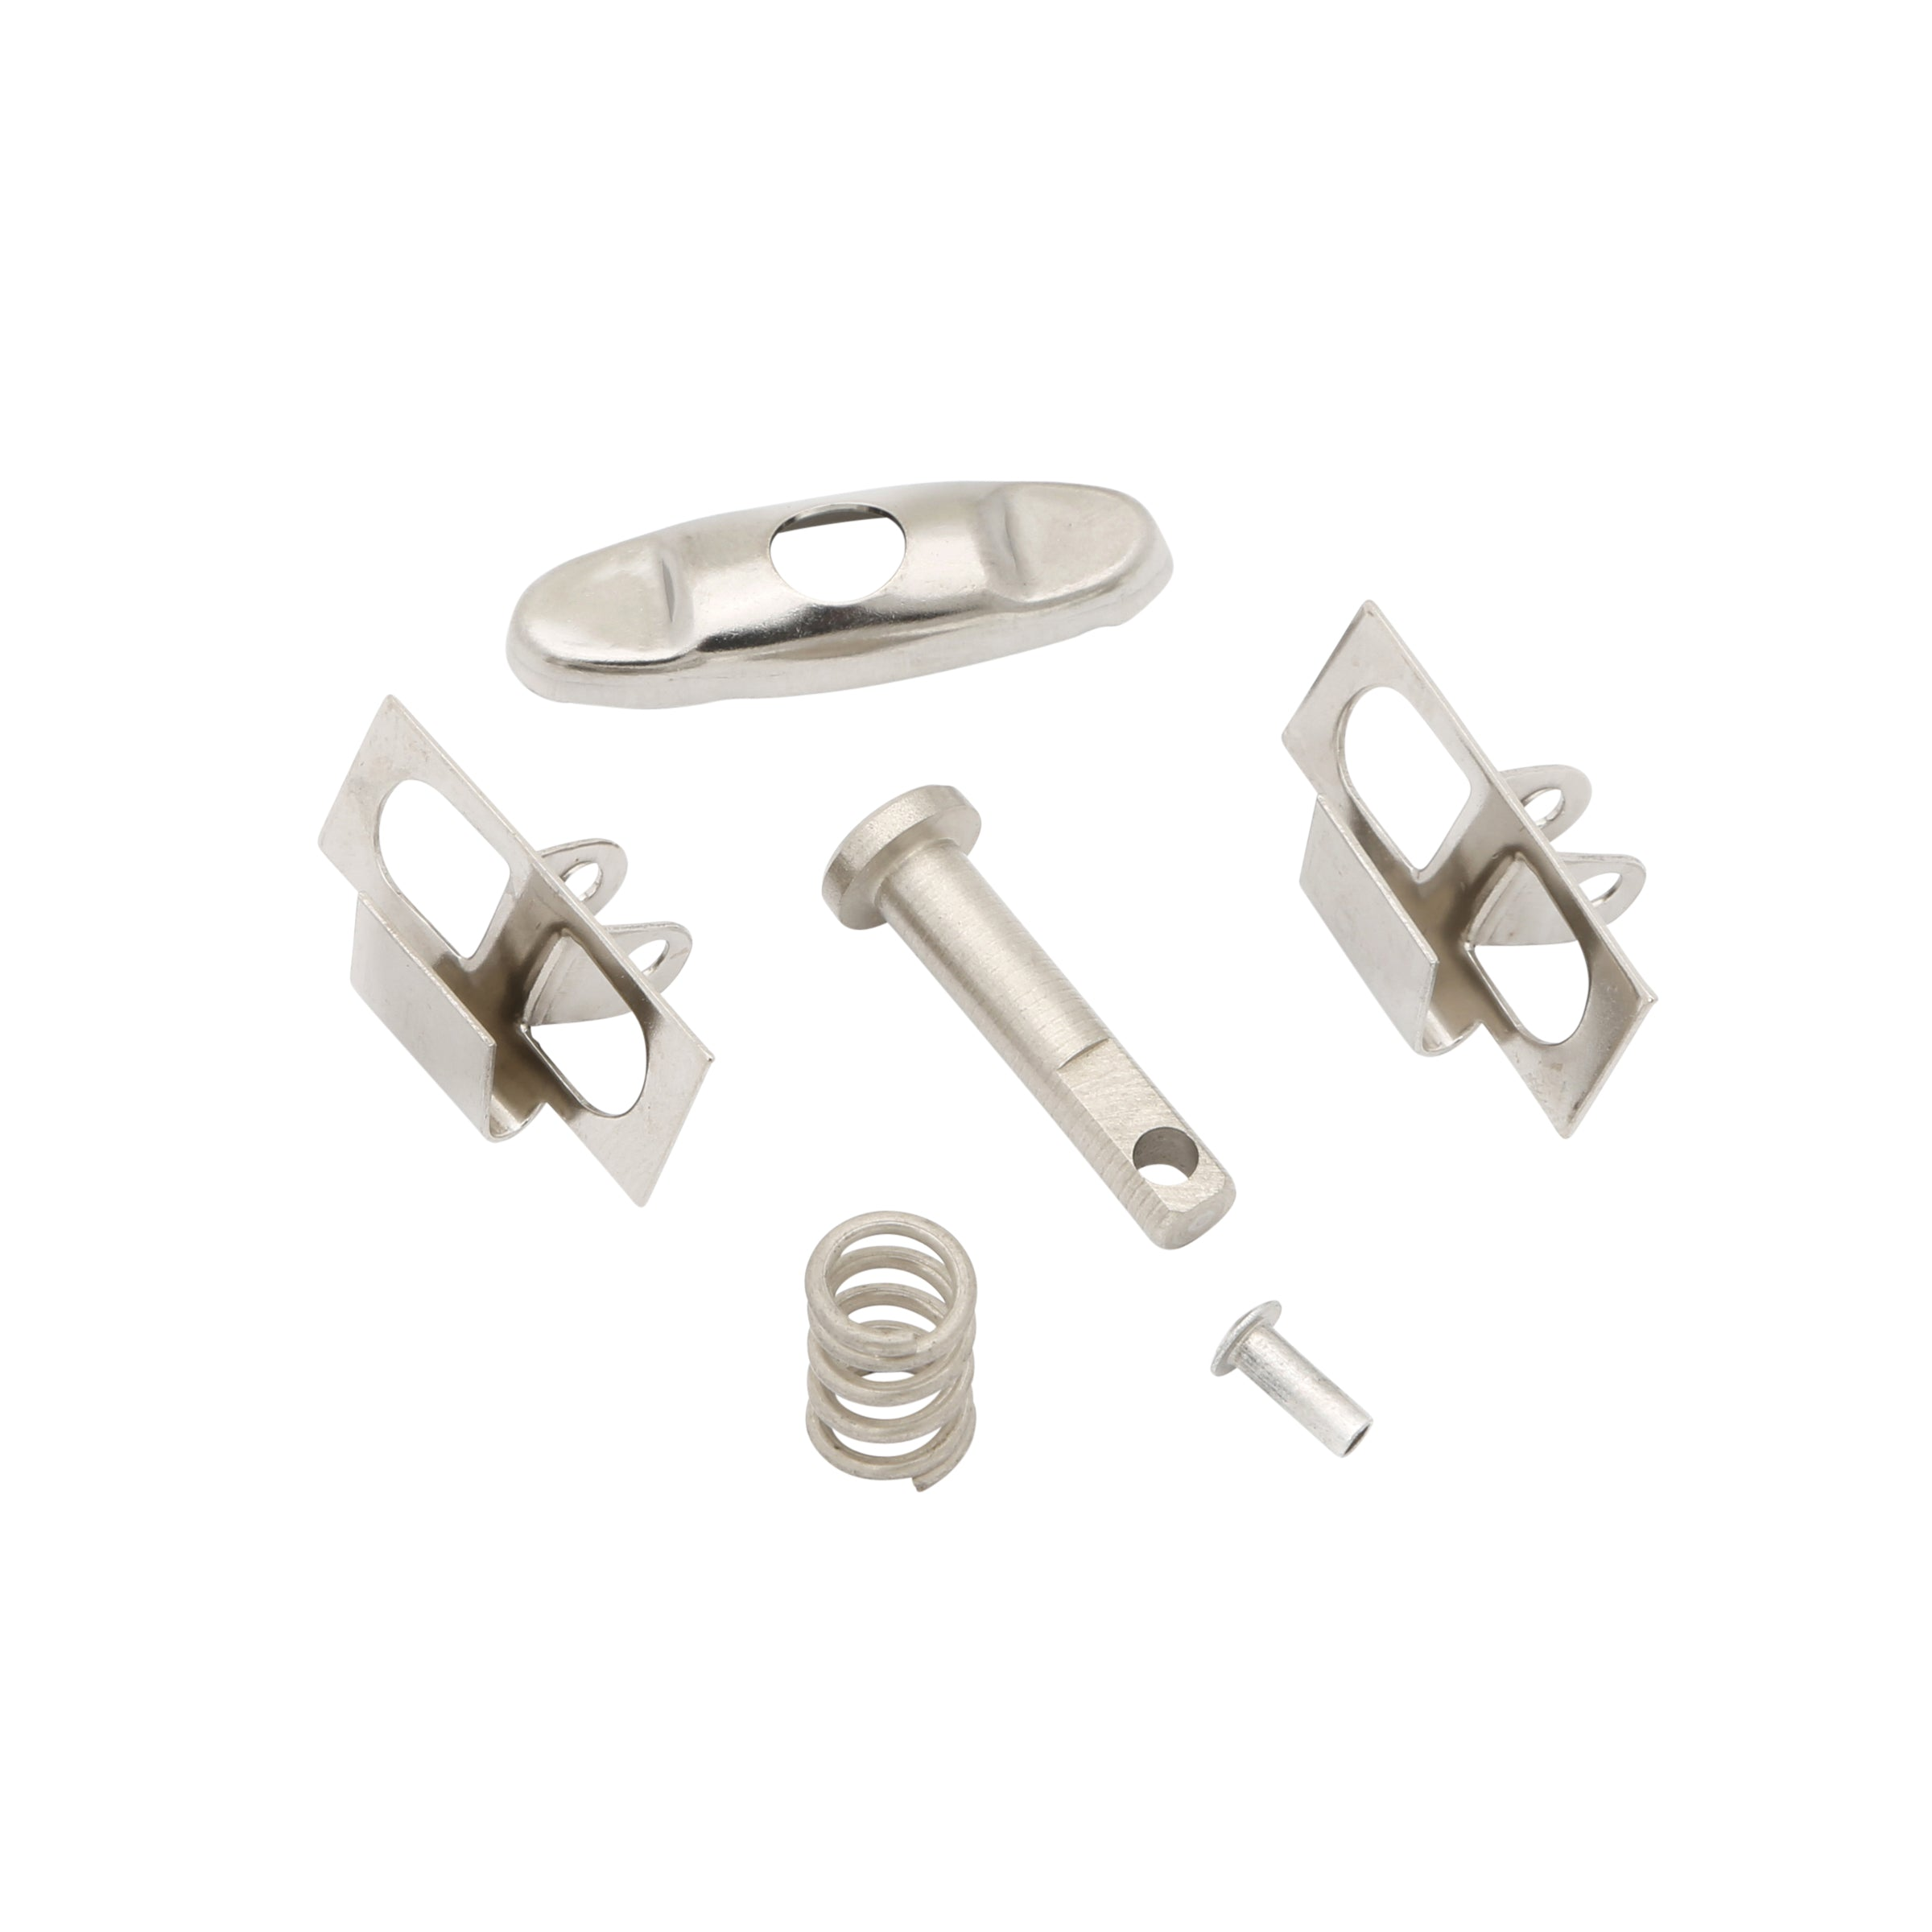 Headlight Rim Latch Repair Kit • 1928-34